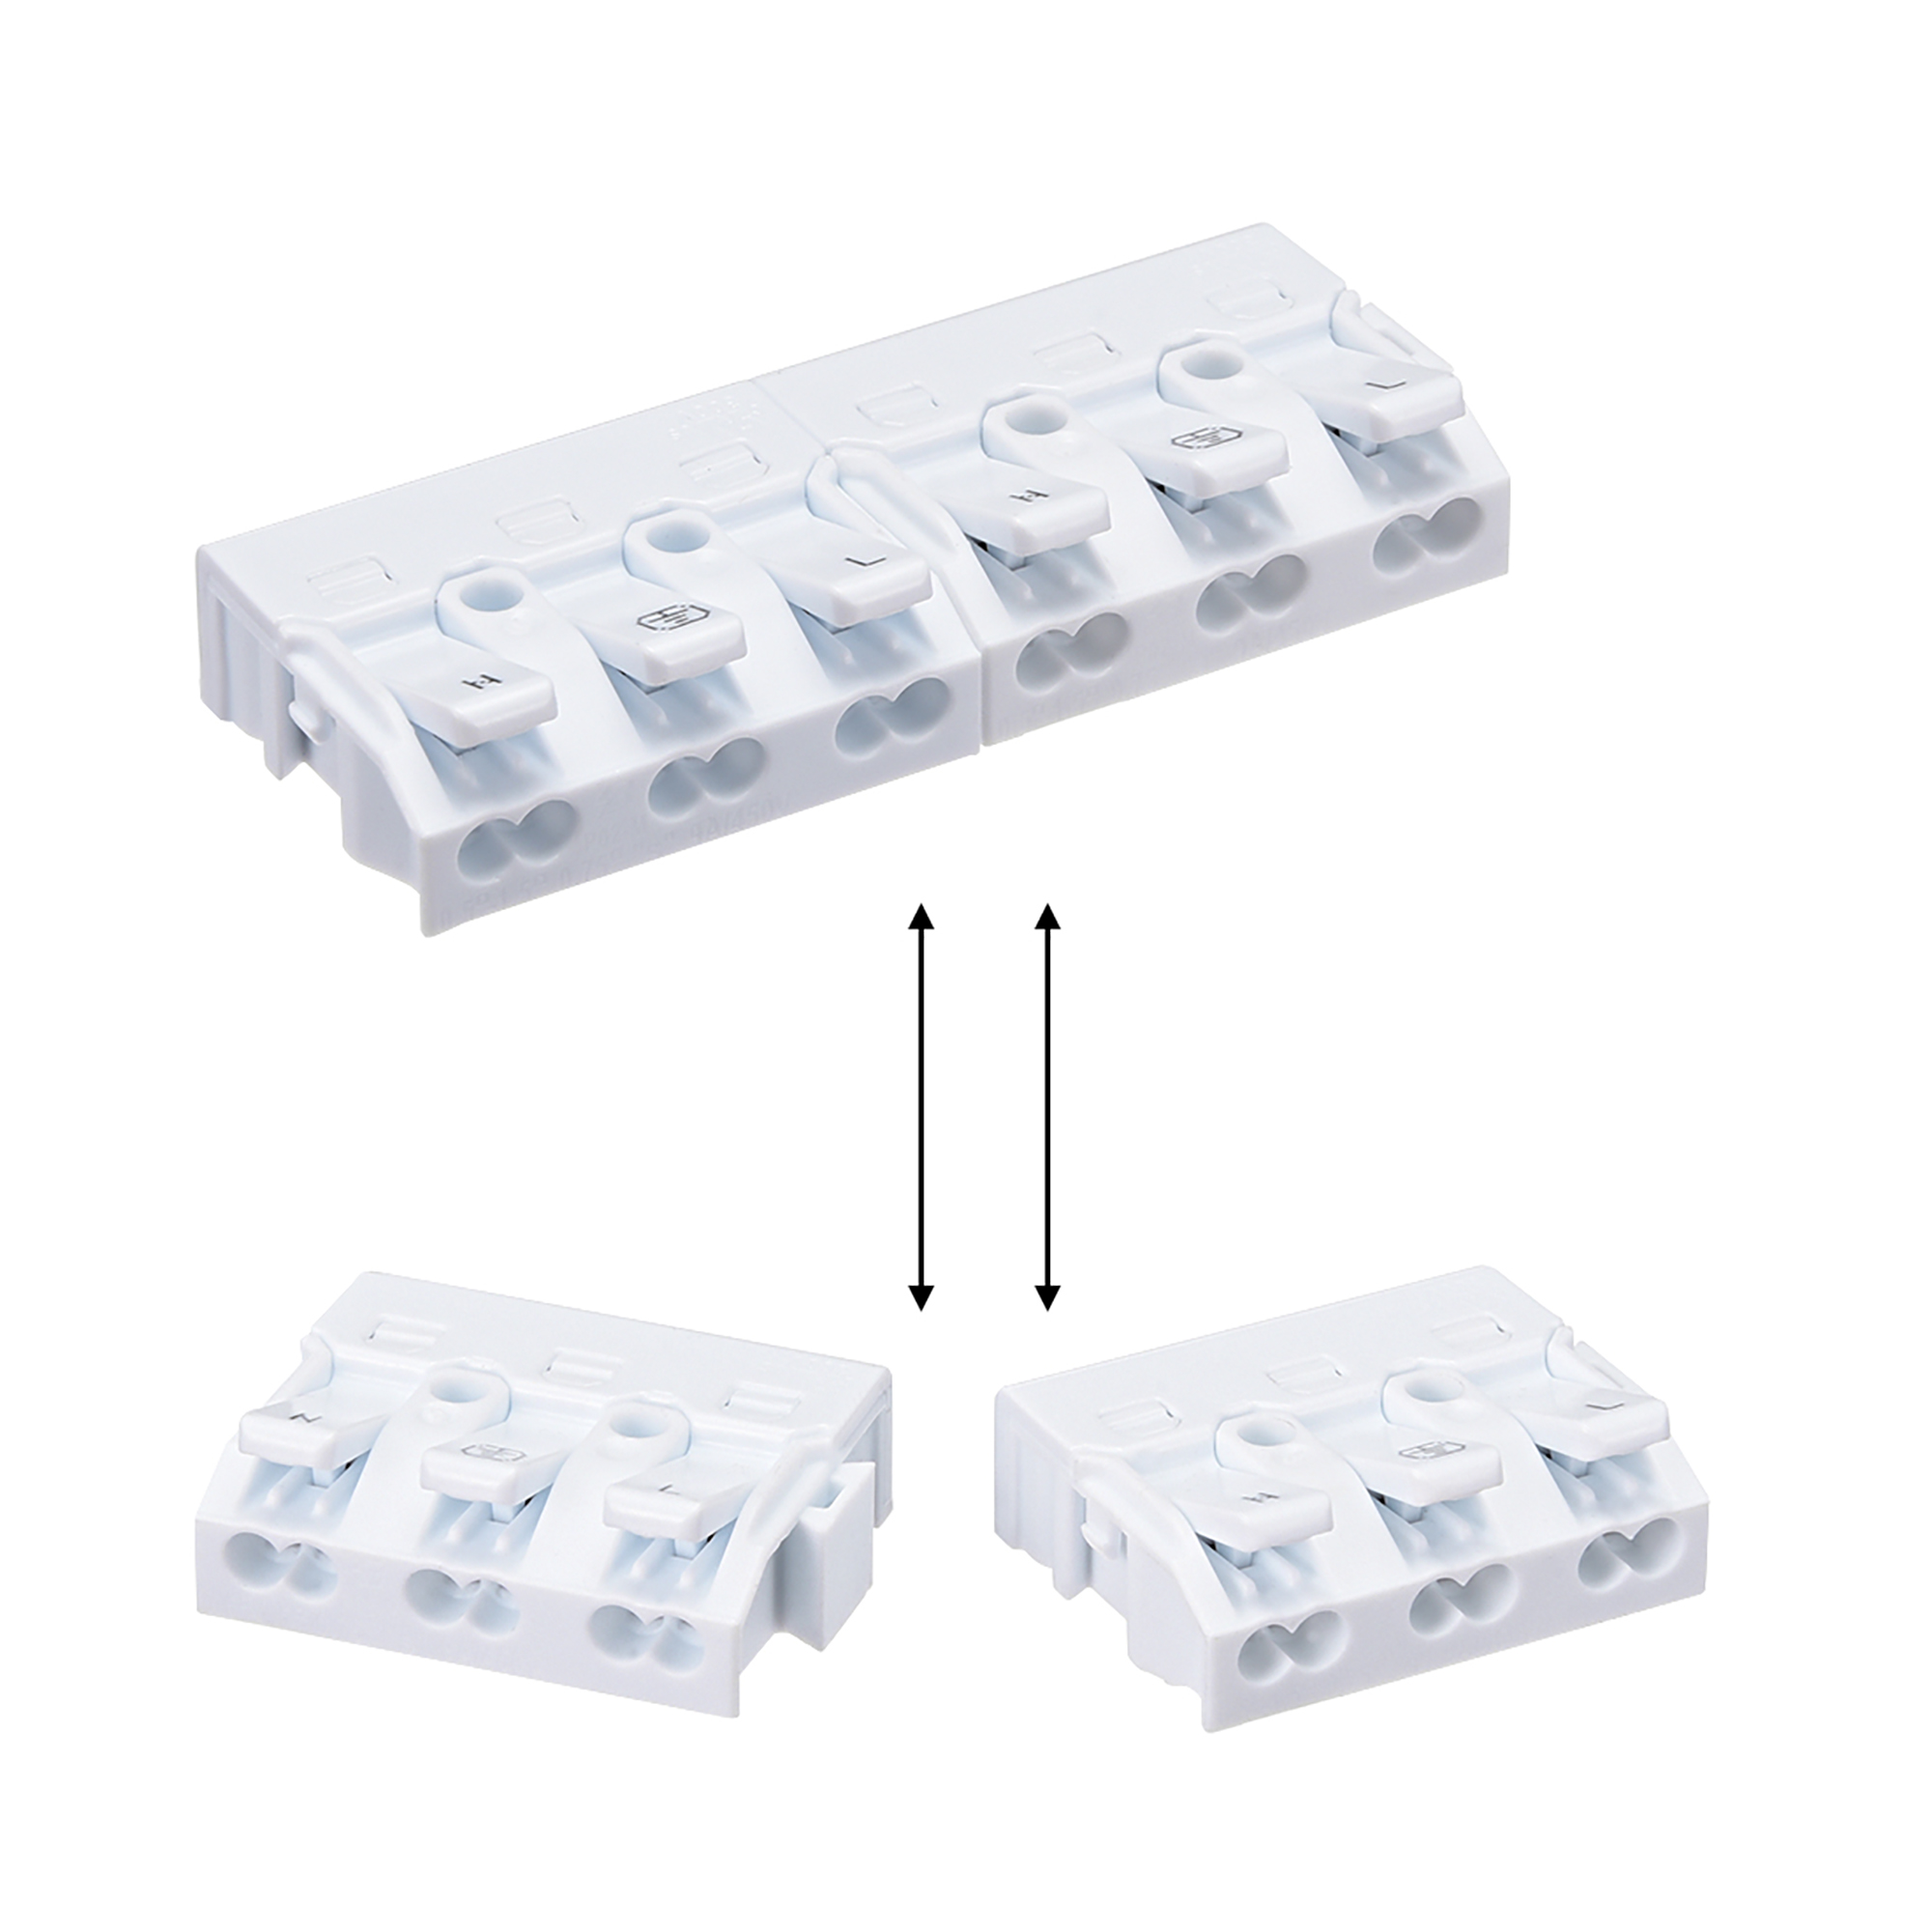 Spring Wire Connectors Quick Cable Connector Press Type Terminal Block 3 Ways 10pcs - image 5 of 6